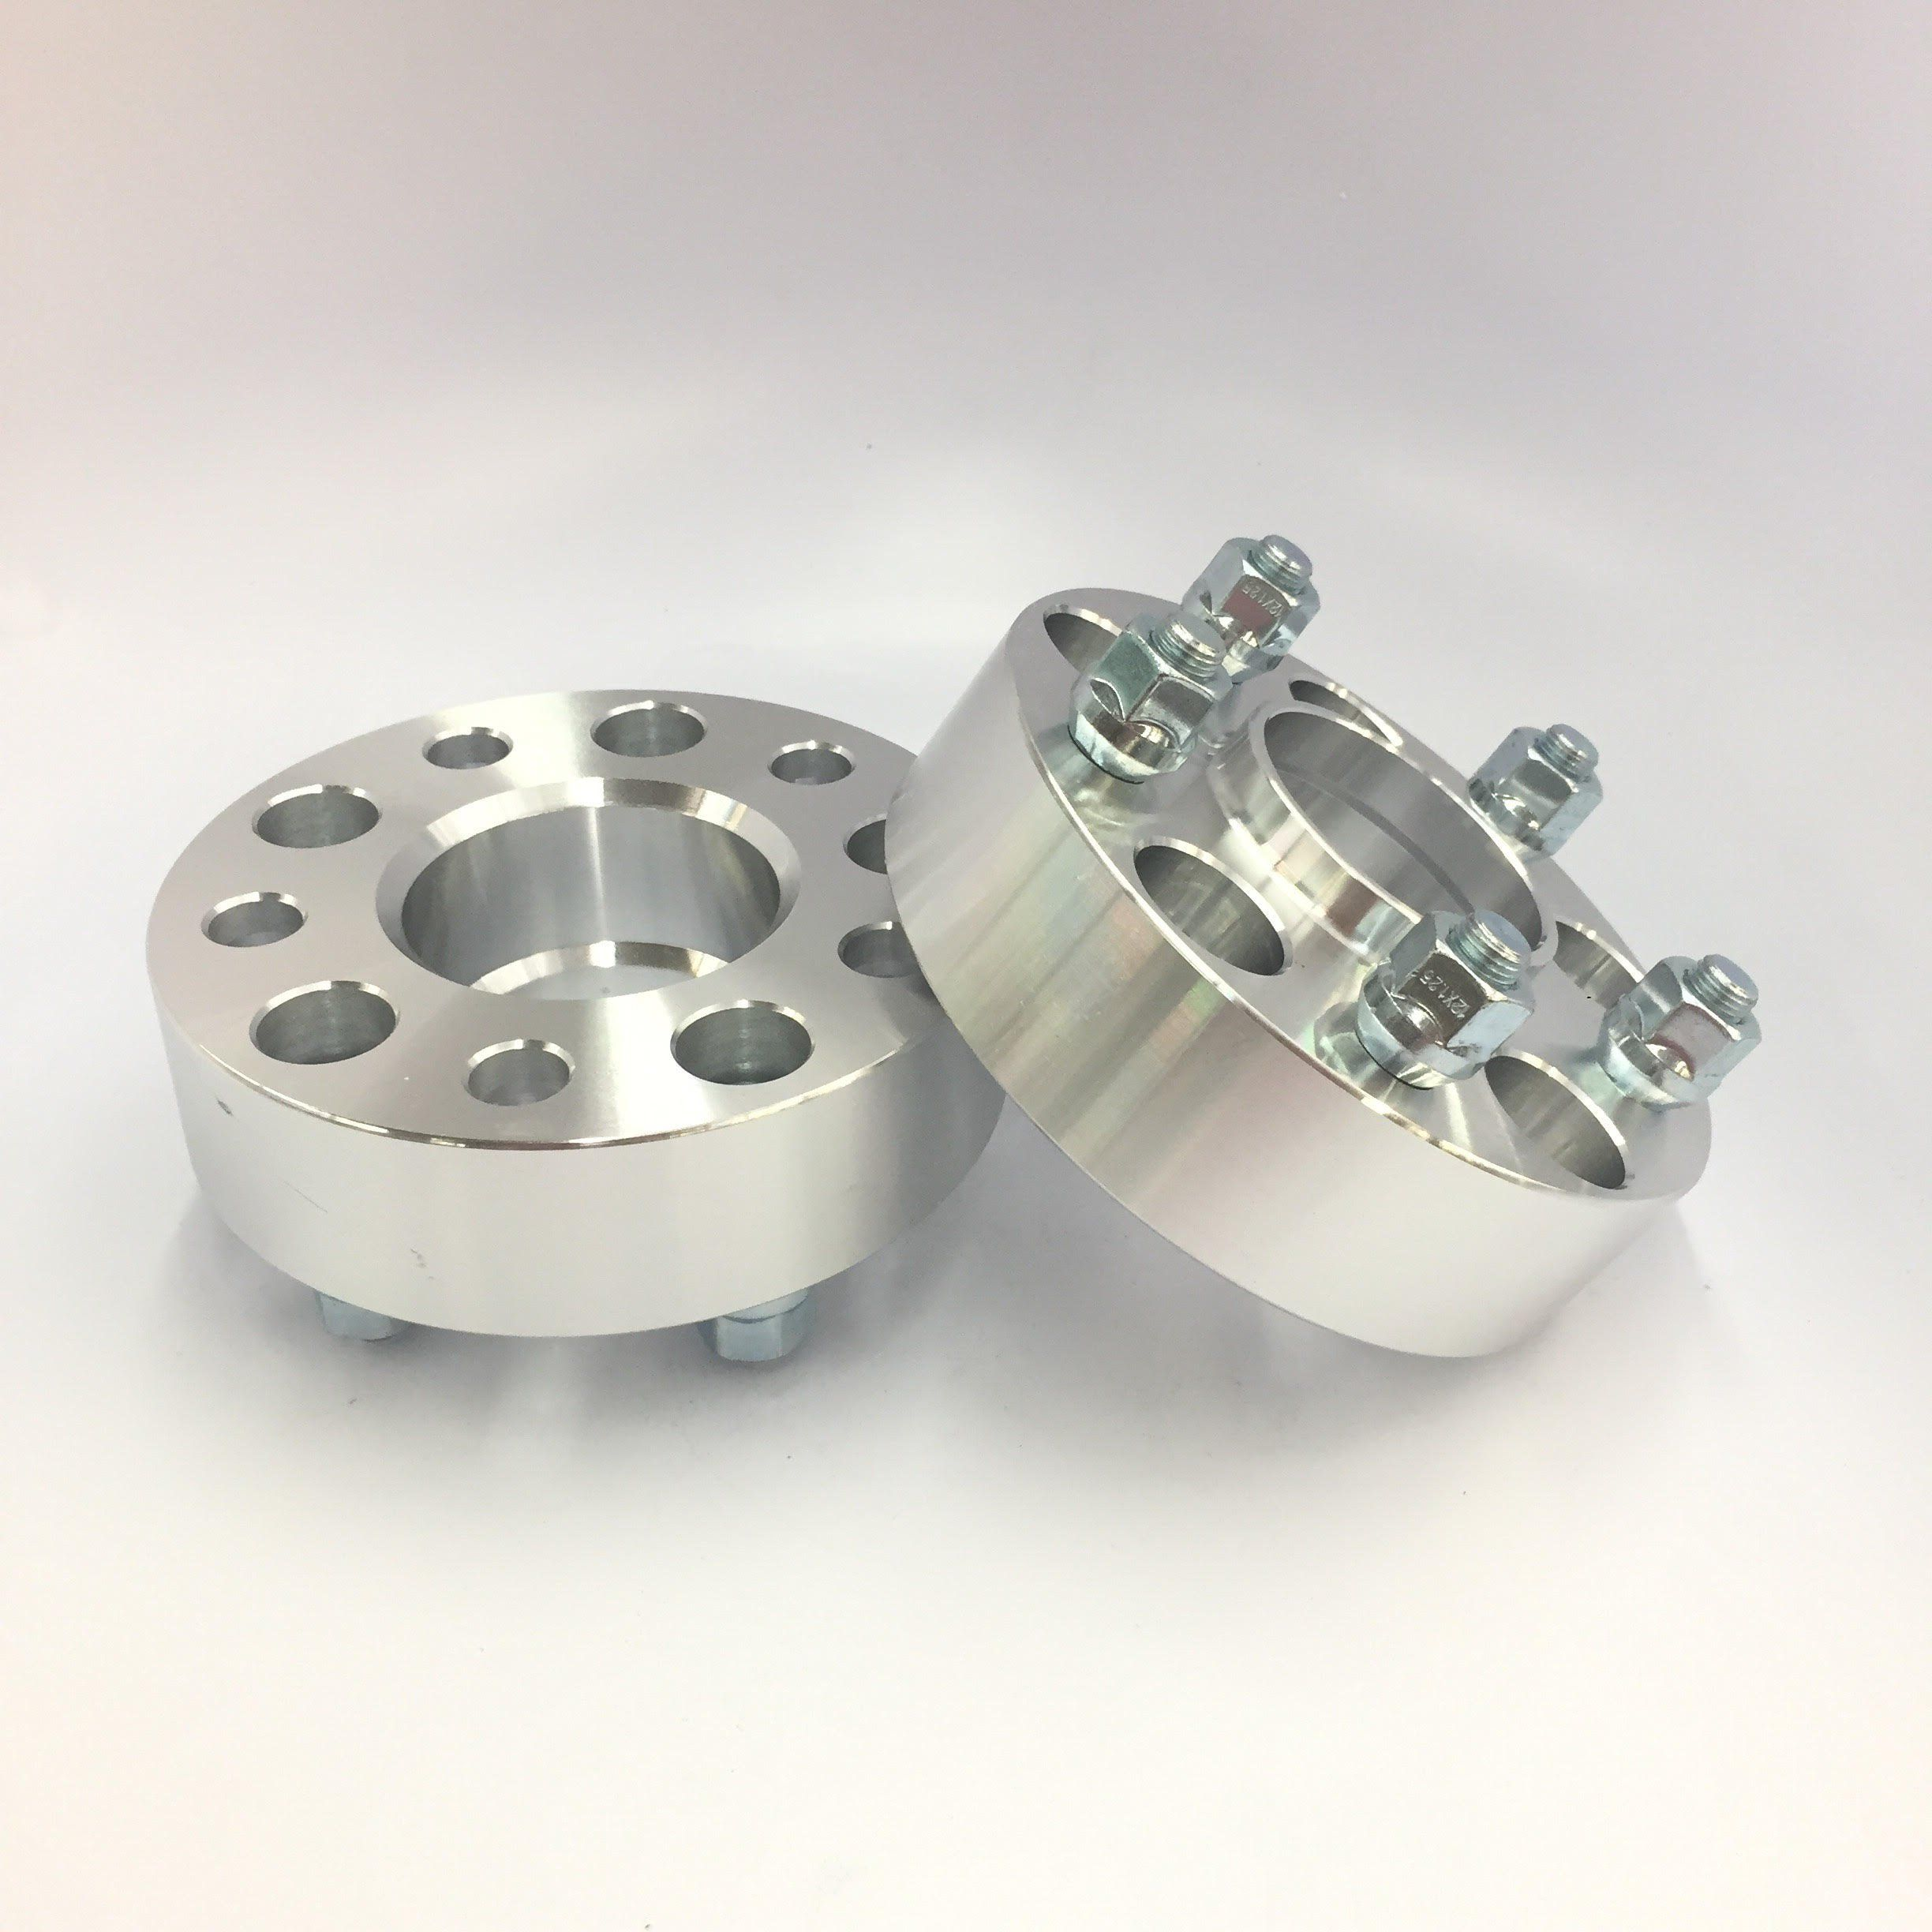 Customadeonly 2pc 2 0 Thick Wheel Spacers With Lip 5x115